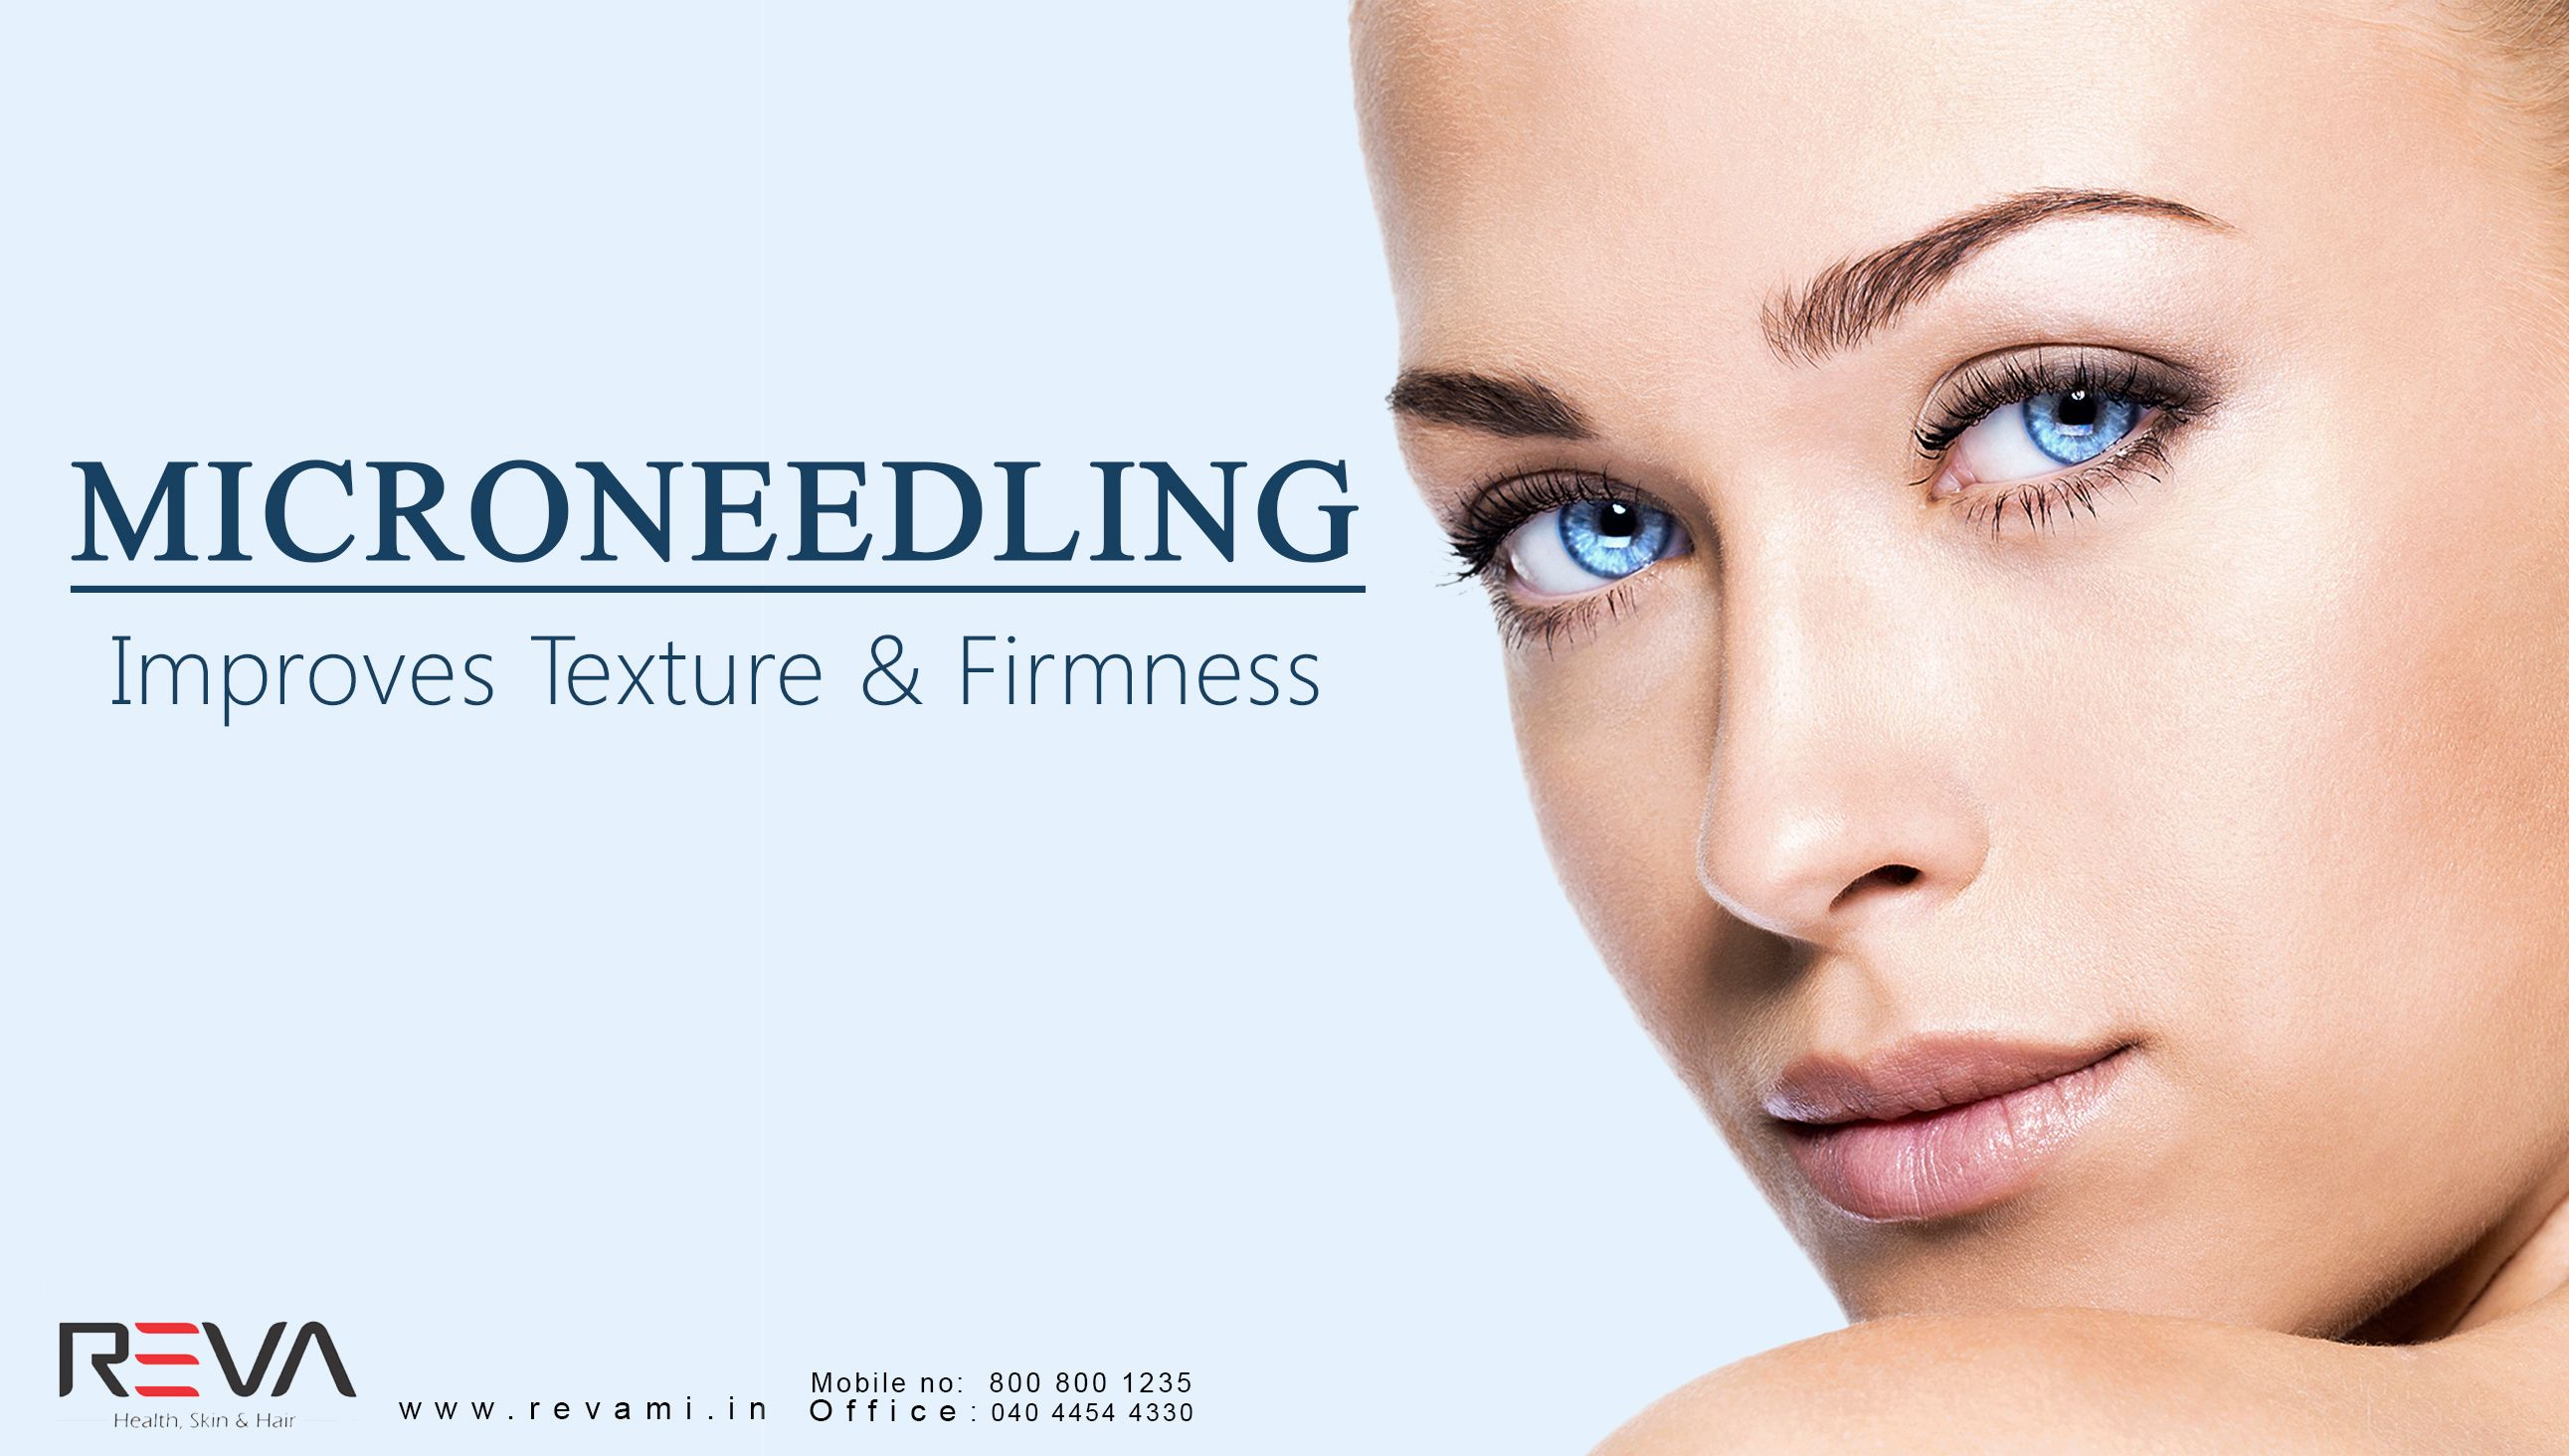 MicroNeedling Improves Texture & Firmness more info